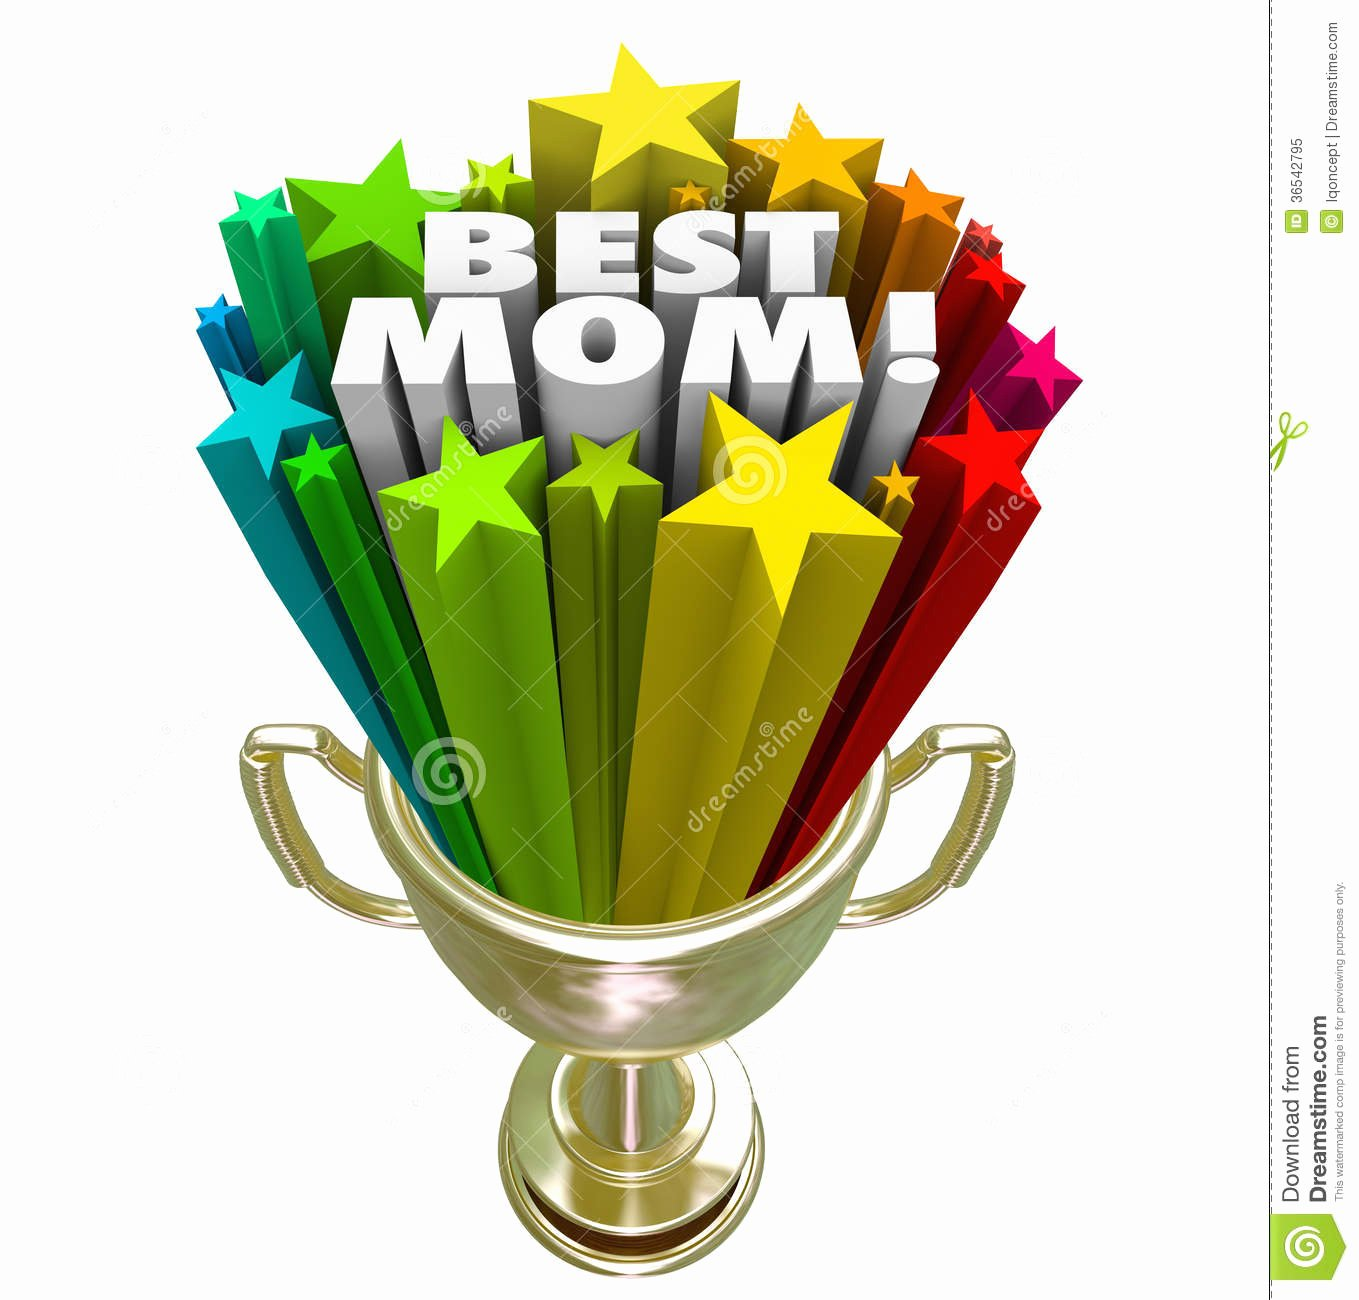 Best Mom In the World Award Luxury Best Mom Prize Trophy Award Worlds Greatest Mother Stock